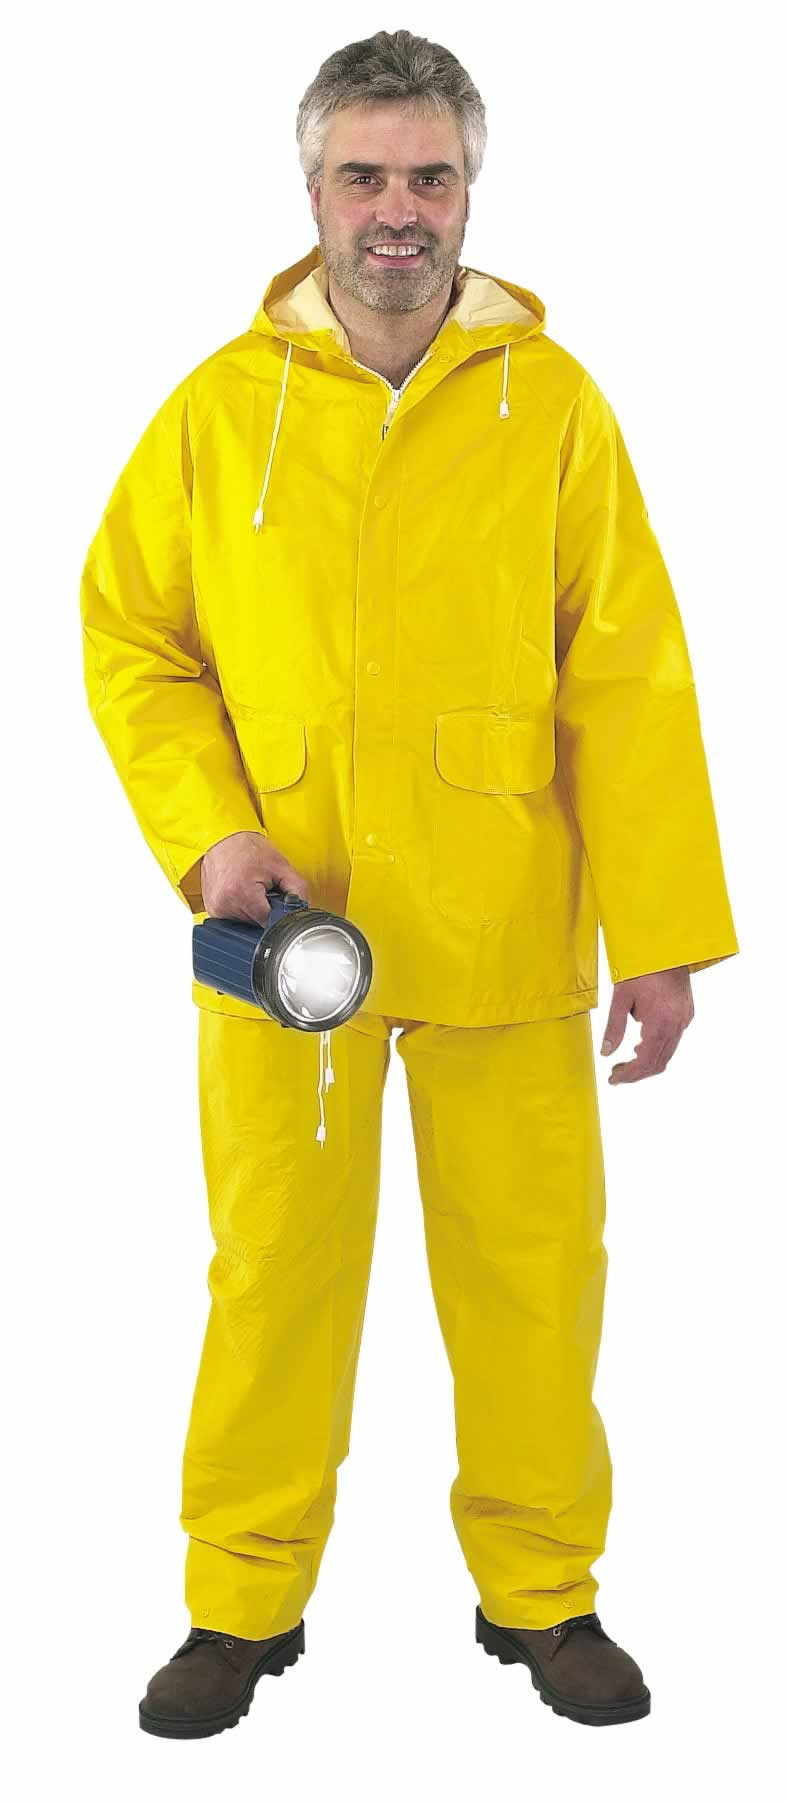 2 PIECE YELLOW RAIN SUIT - SIZE L